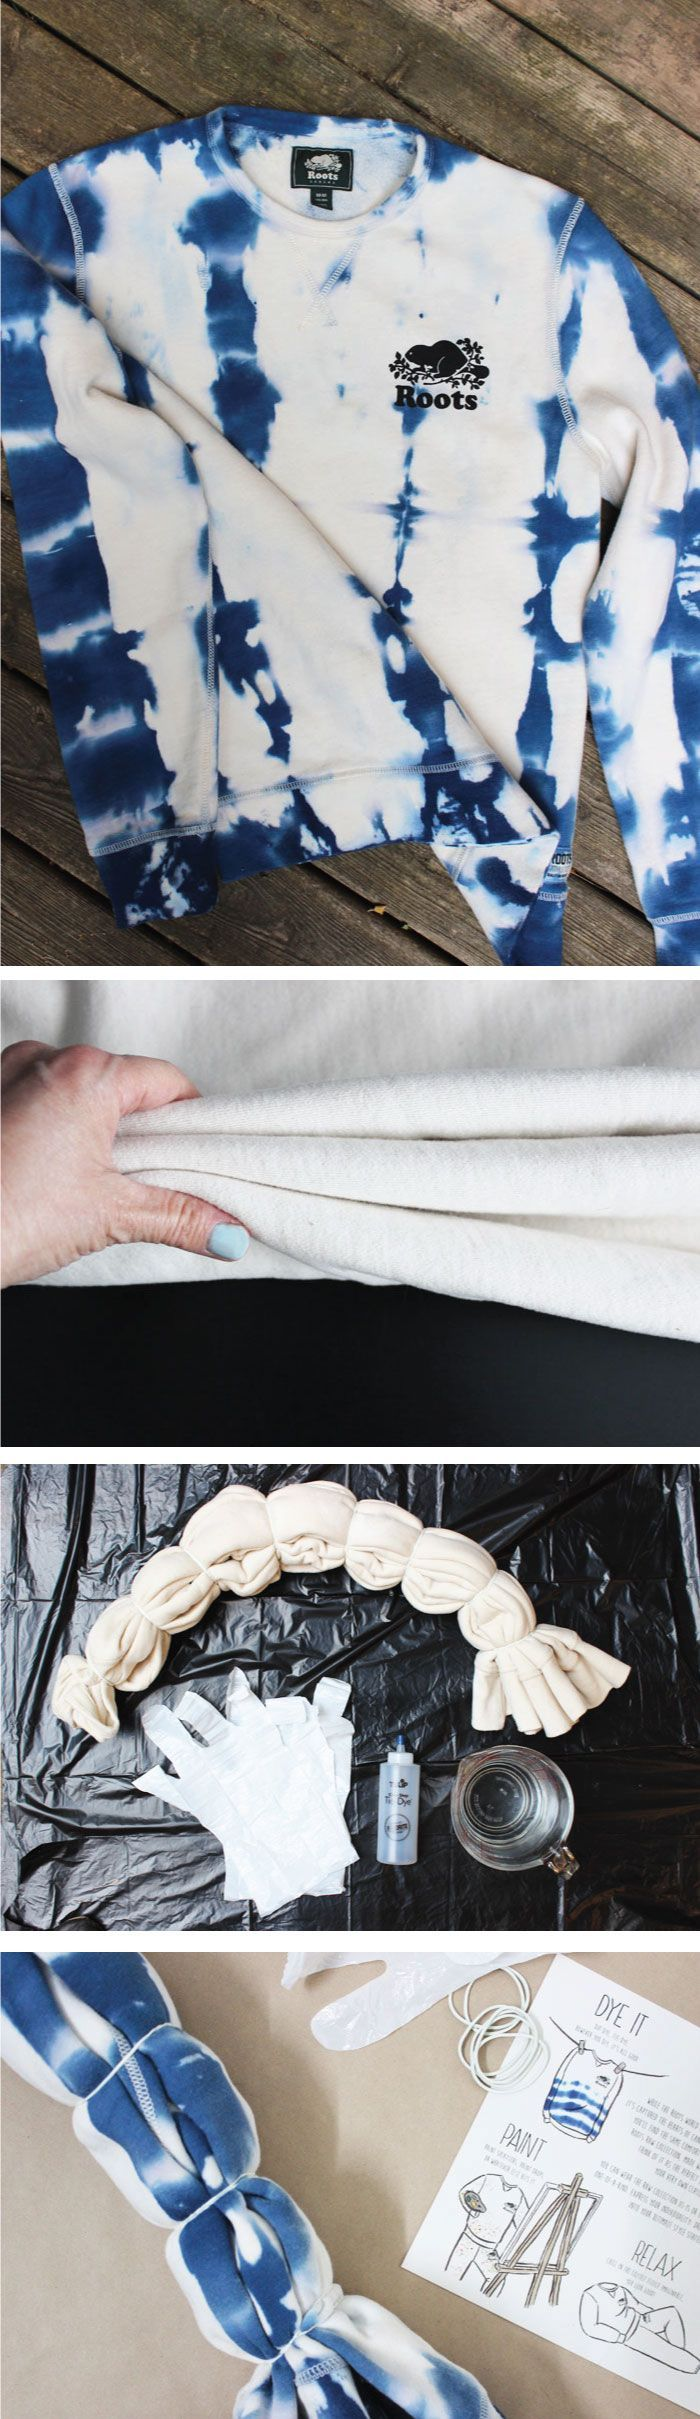 DIY Shibori - a super-easy way to get the shibori look using tie-dye ink! #diy #shibori #summerfun